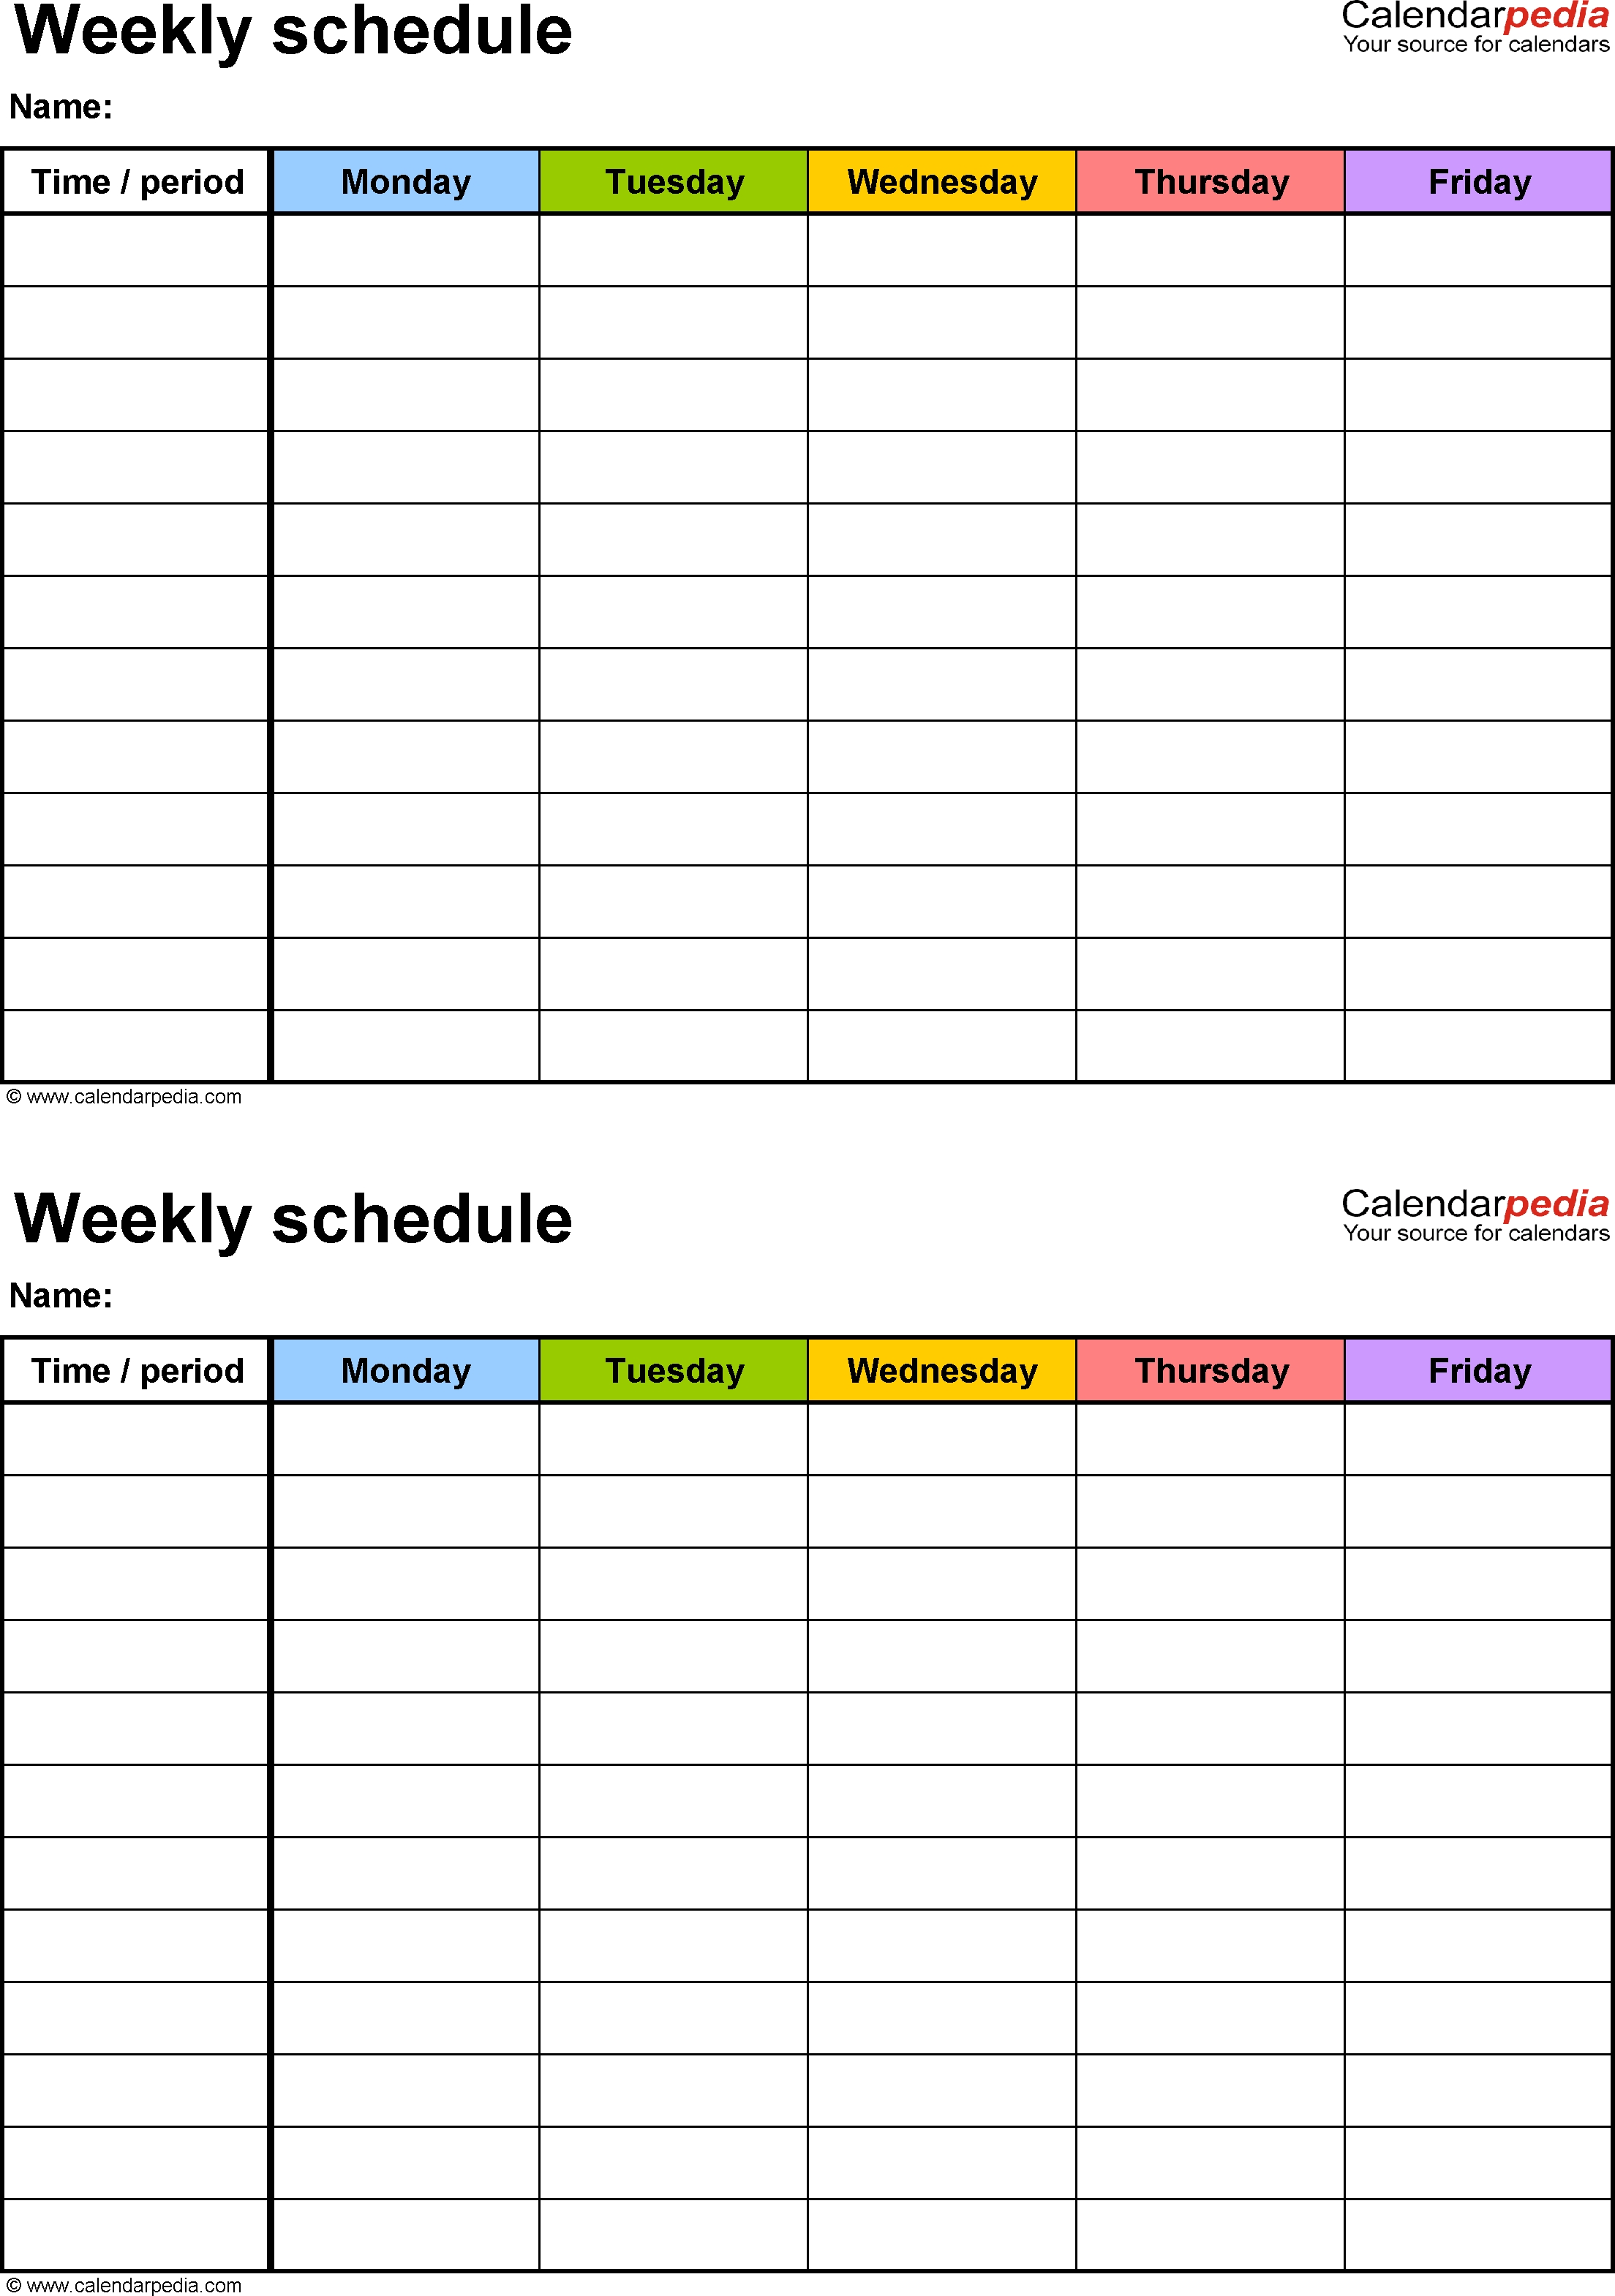 Free Weekly Schedule Templates For Word - 18 Templates-2 Week Schedule Template Printable